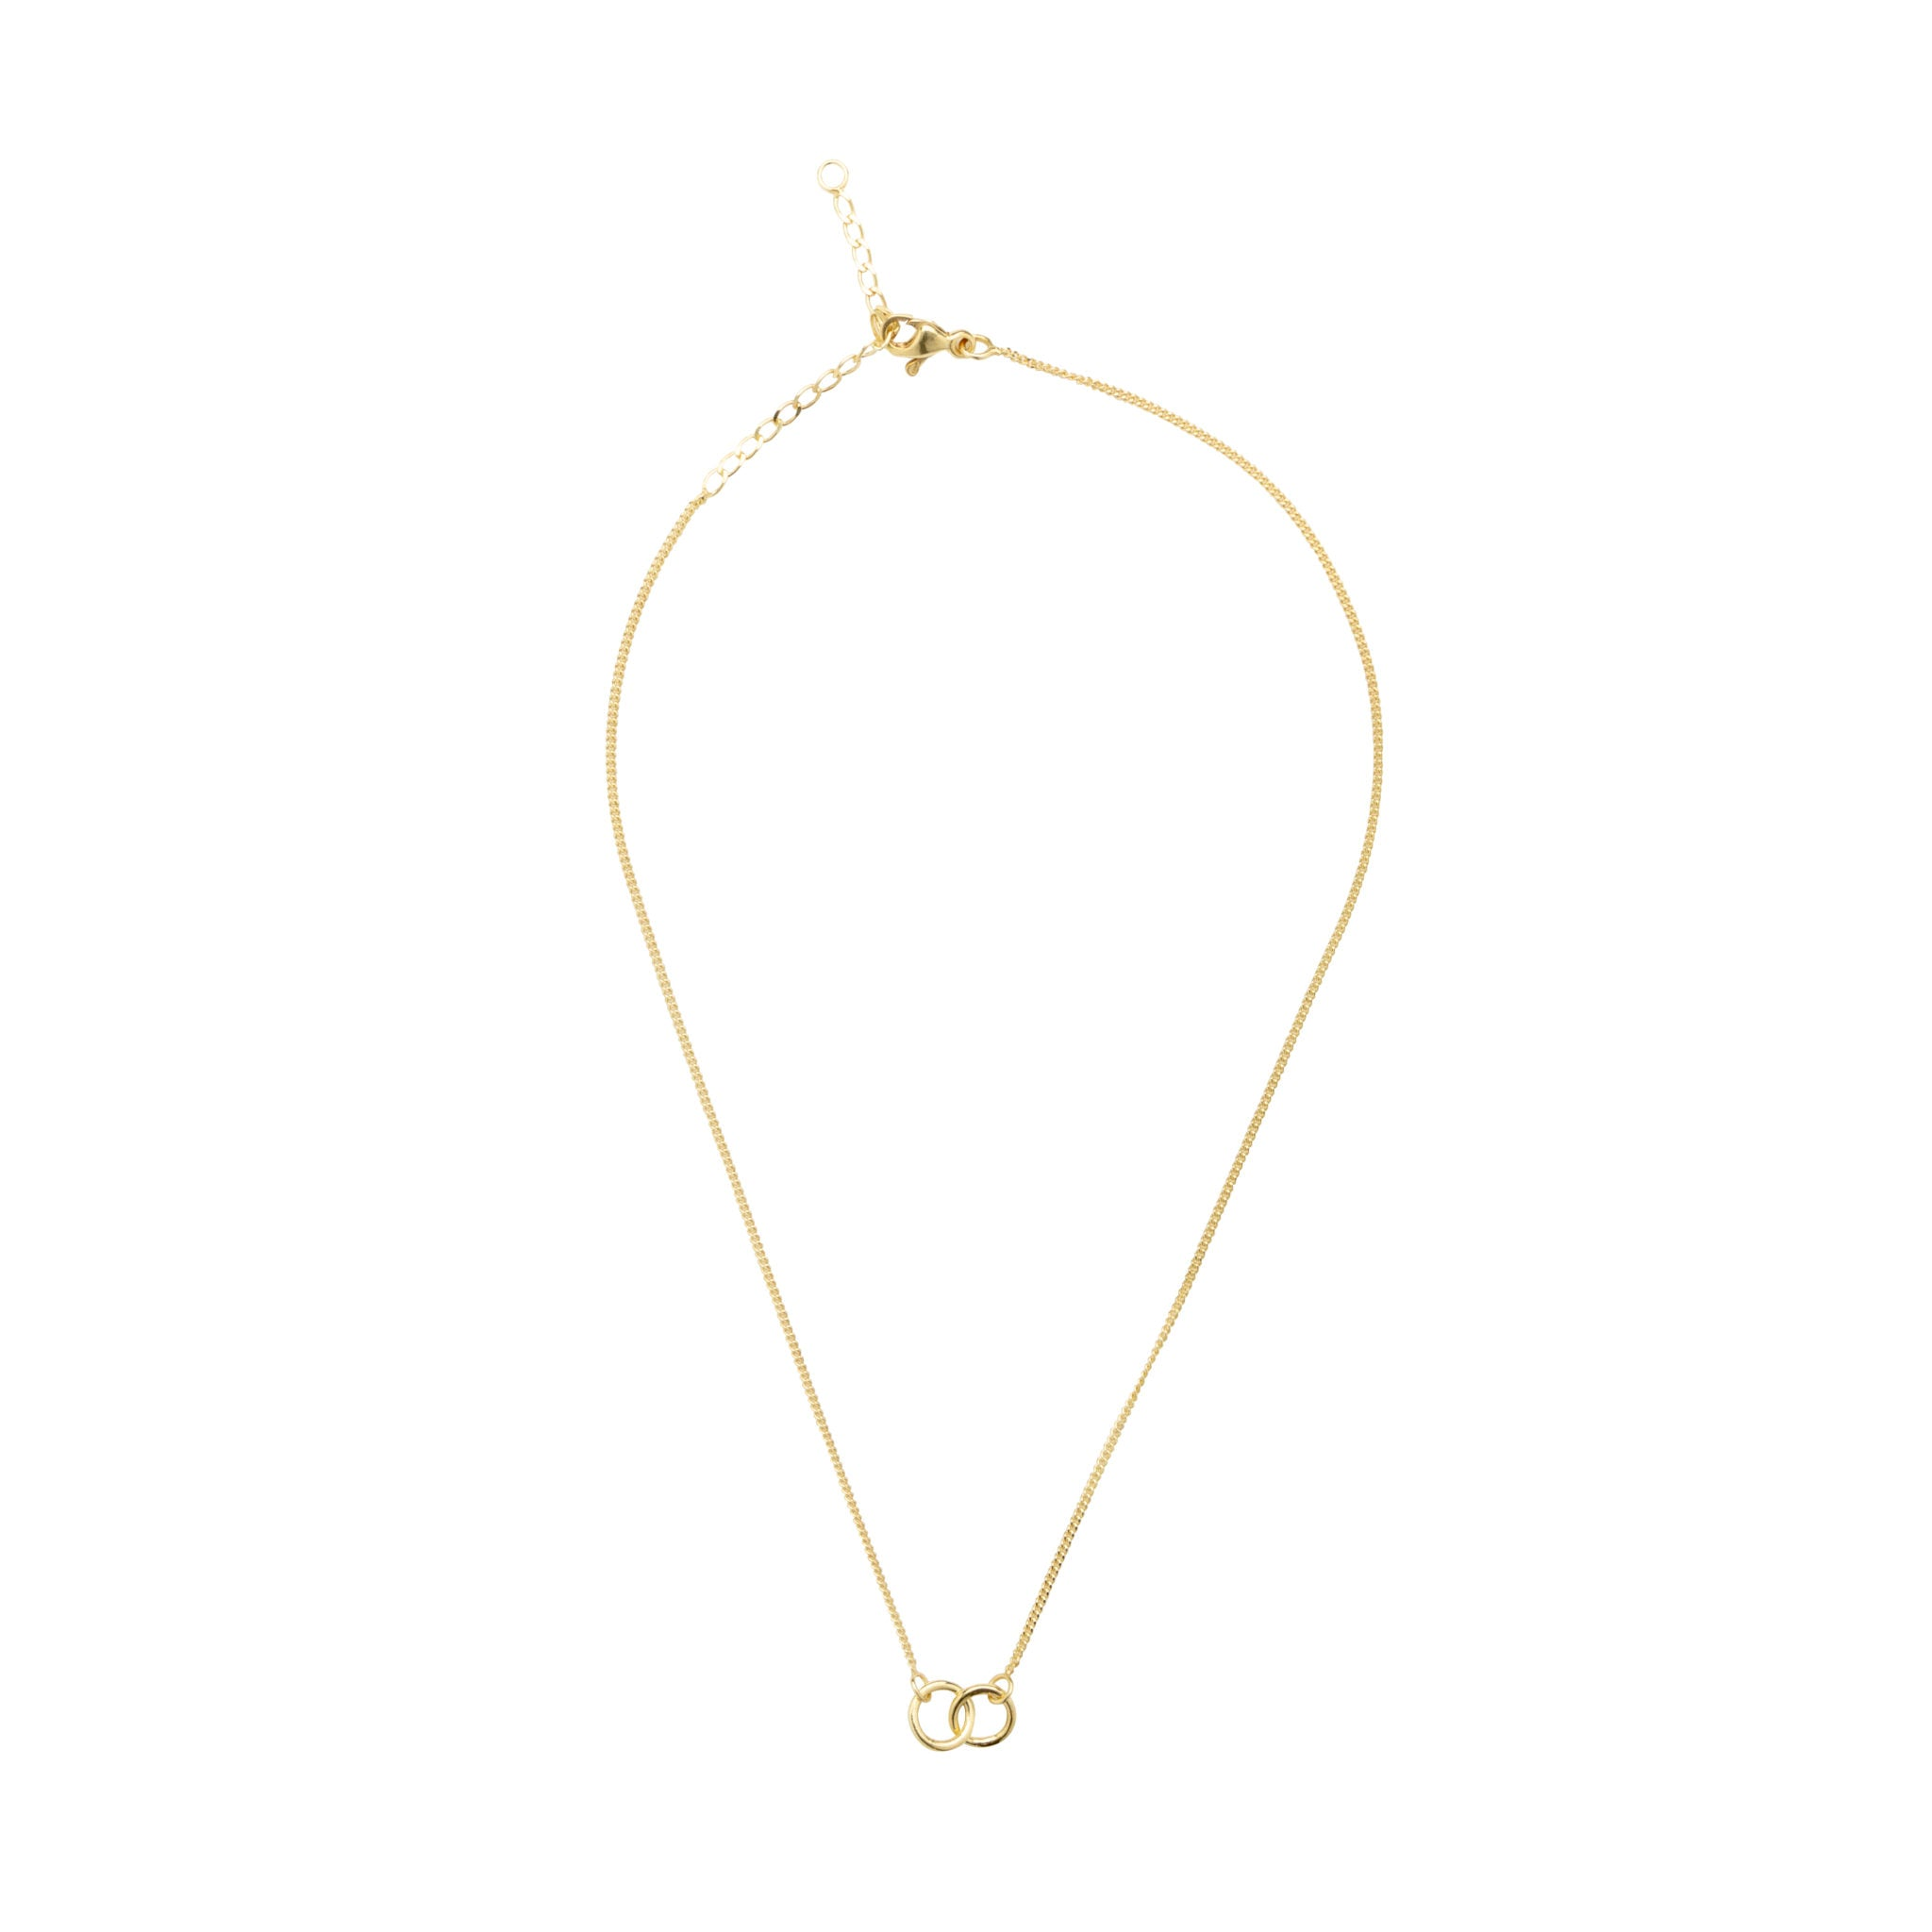 Eternal Connection Gold Plated Necklace (Small)